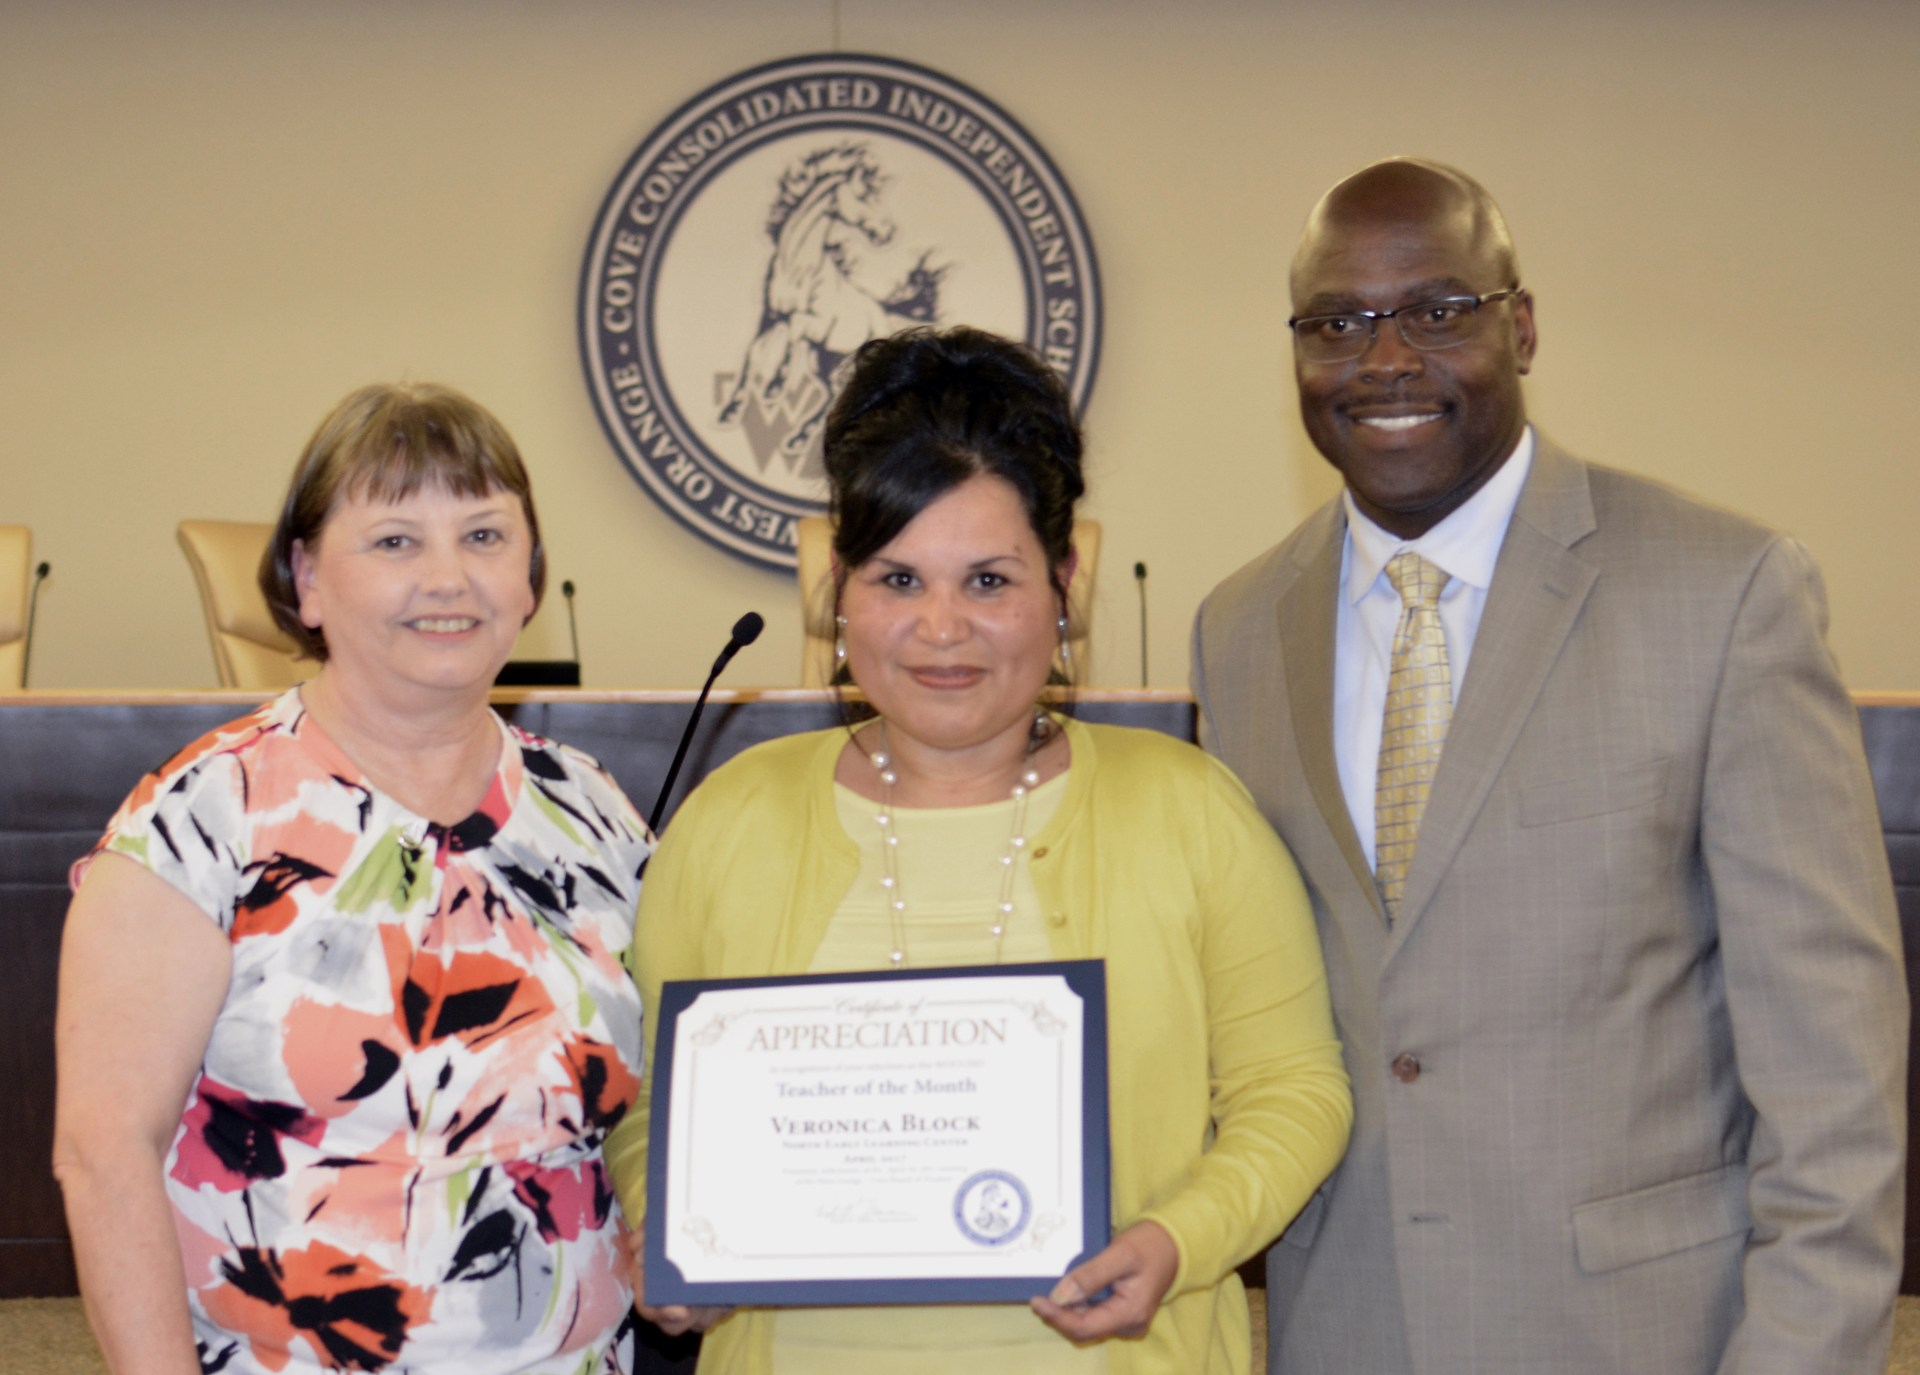 Veronica Block is recognized as Teacher of the Month